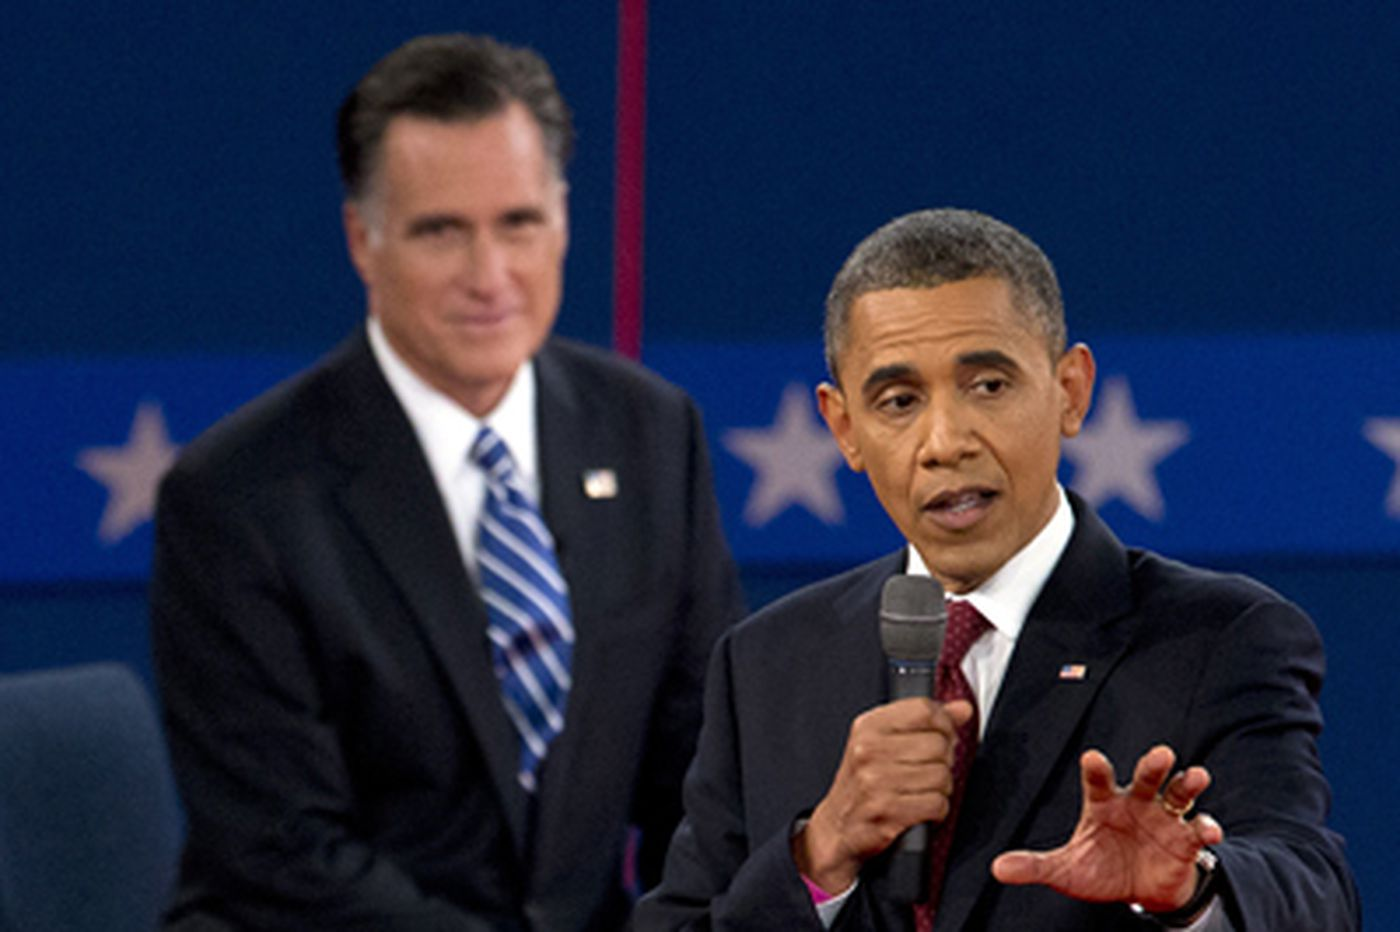 It's Personal: Romney's comment on hiring women touches raw nerve